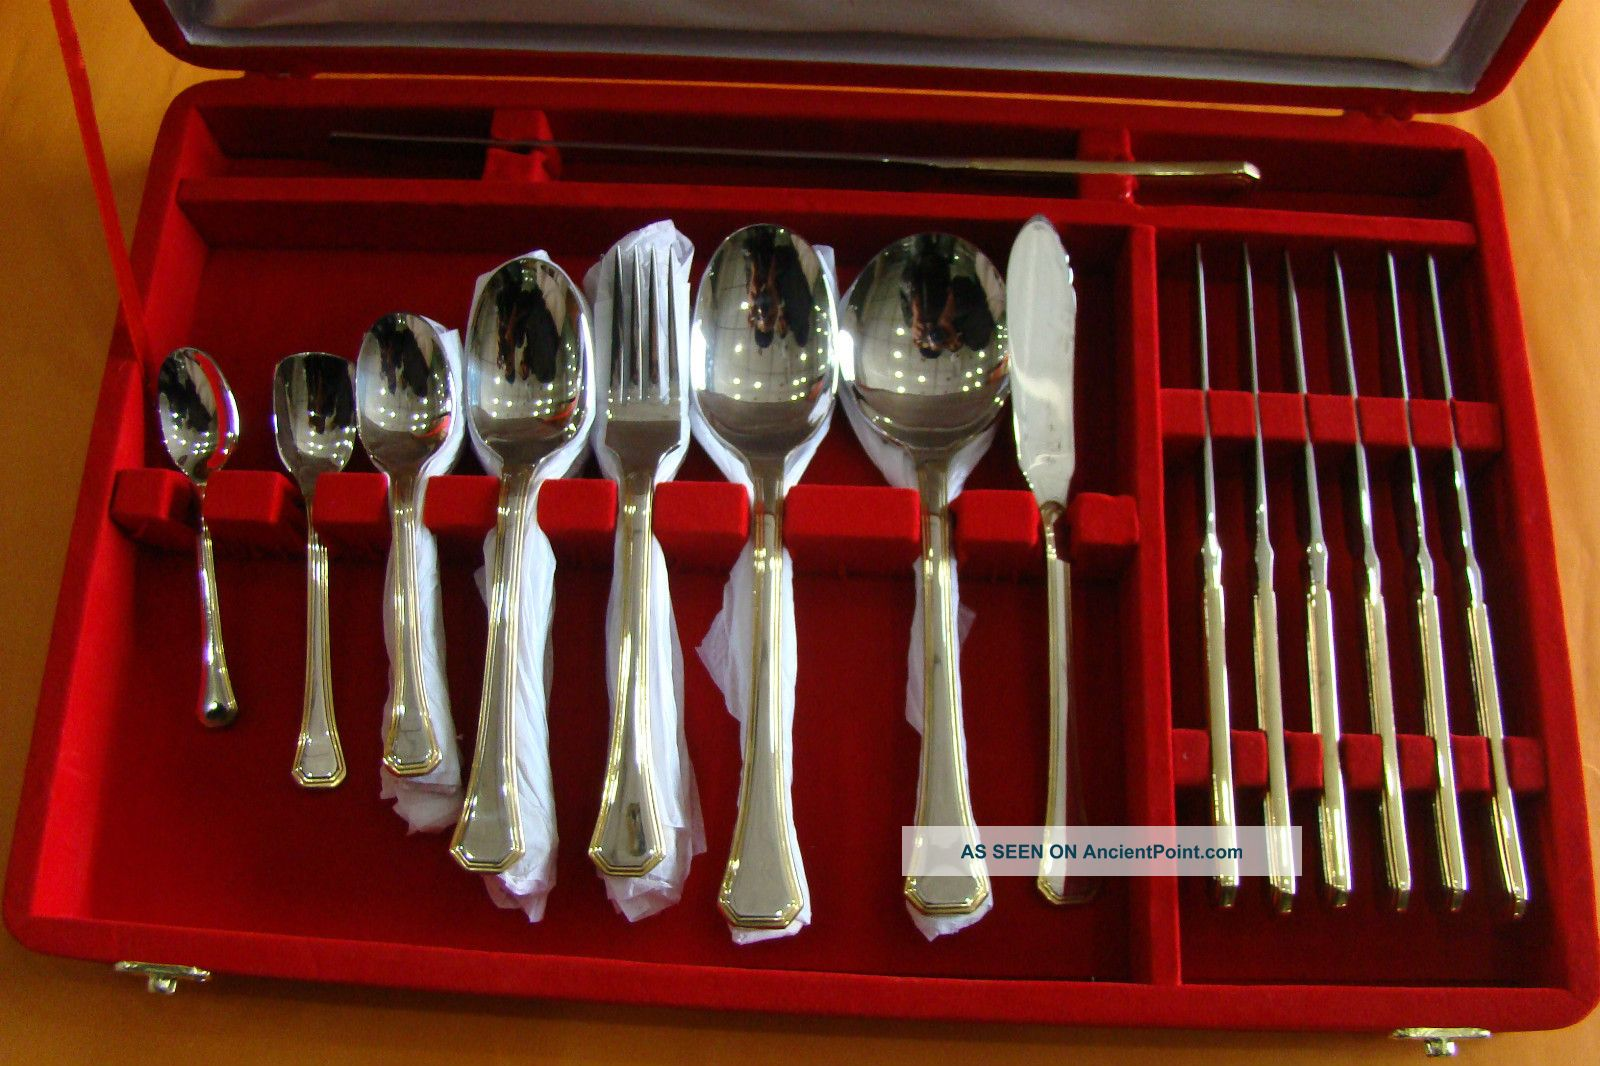 32 Pieces Of Gold Edge Set Ofstainles Steel Spoons Diamond Set By Gohaar Richard Other photo